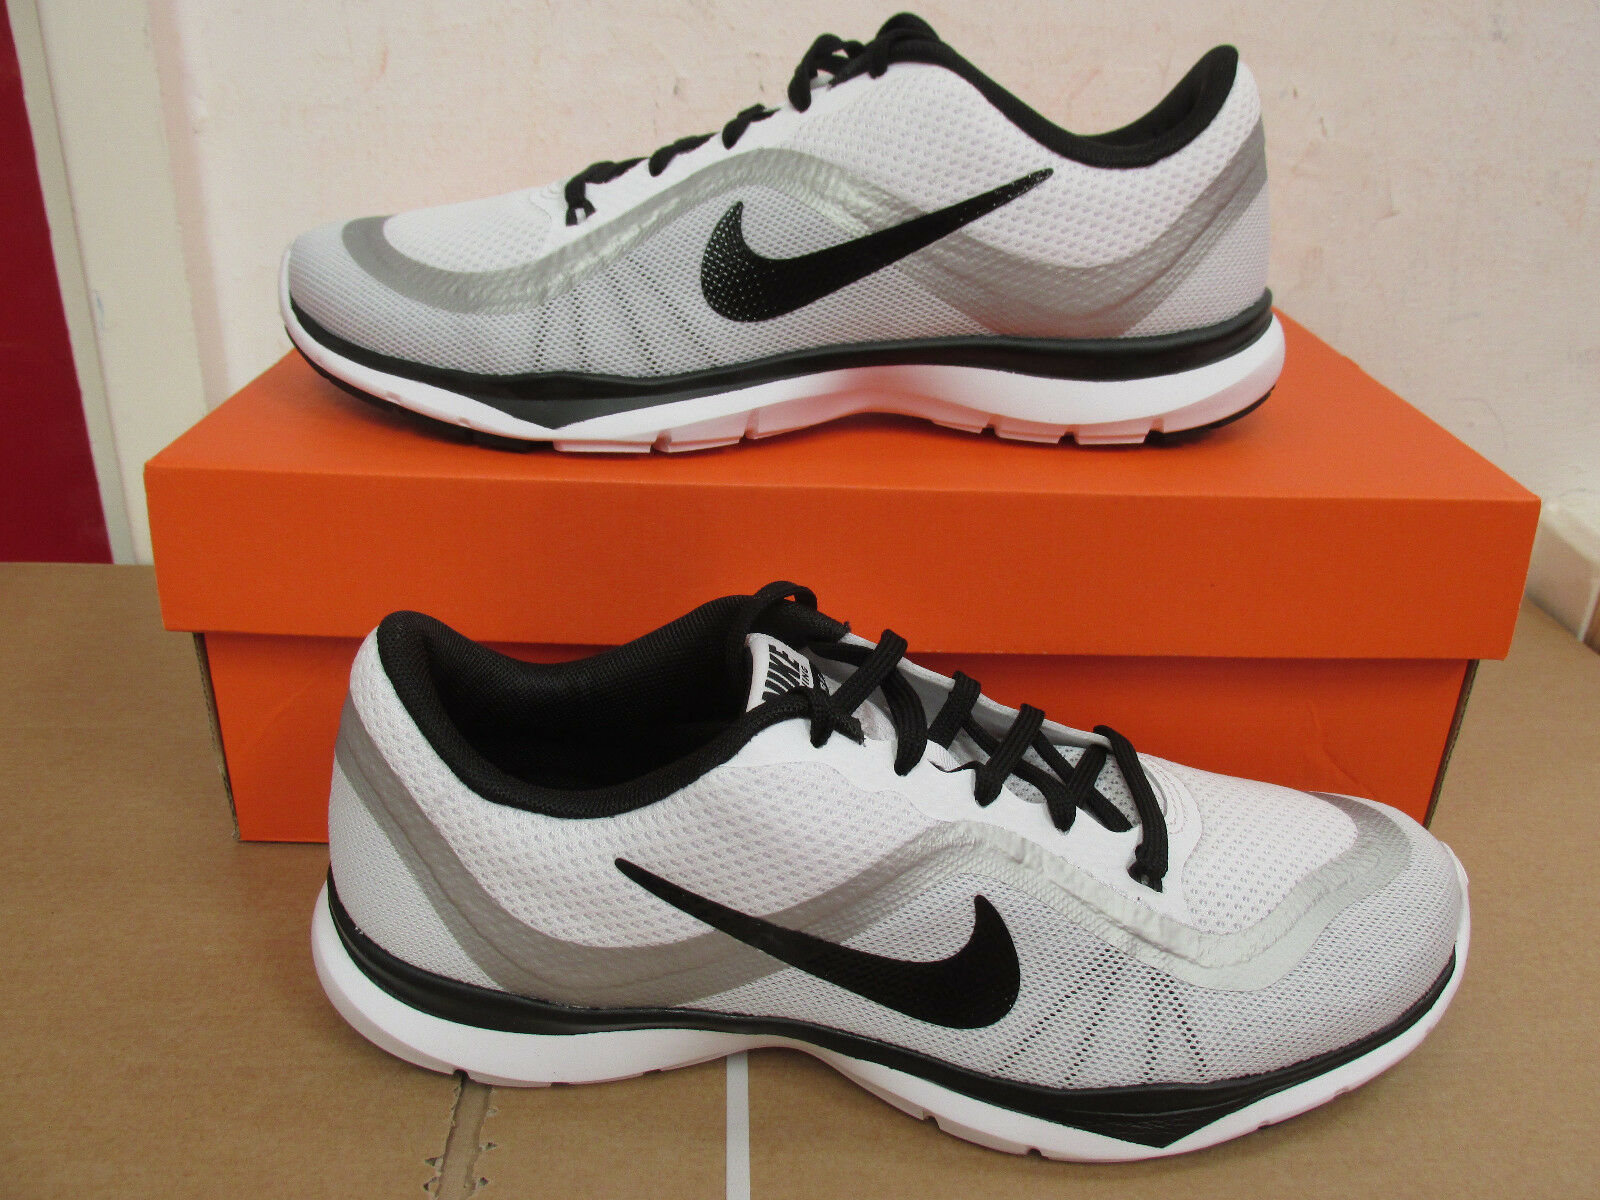 Nike Femme Flex Trainer 6 trainers chaussures 831217 102 Baskets  chaussures trainers  CLEARANCE b21a57